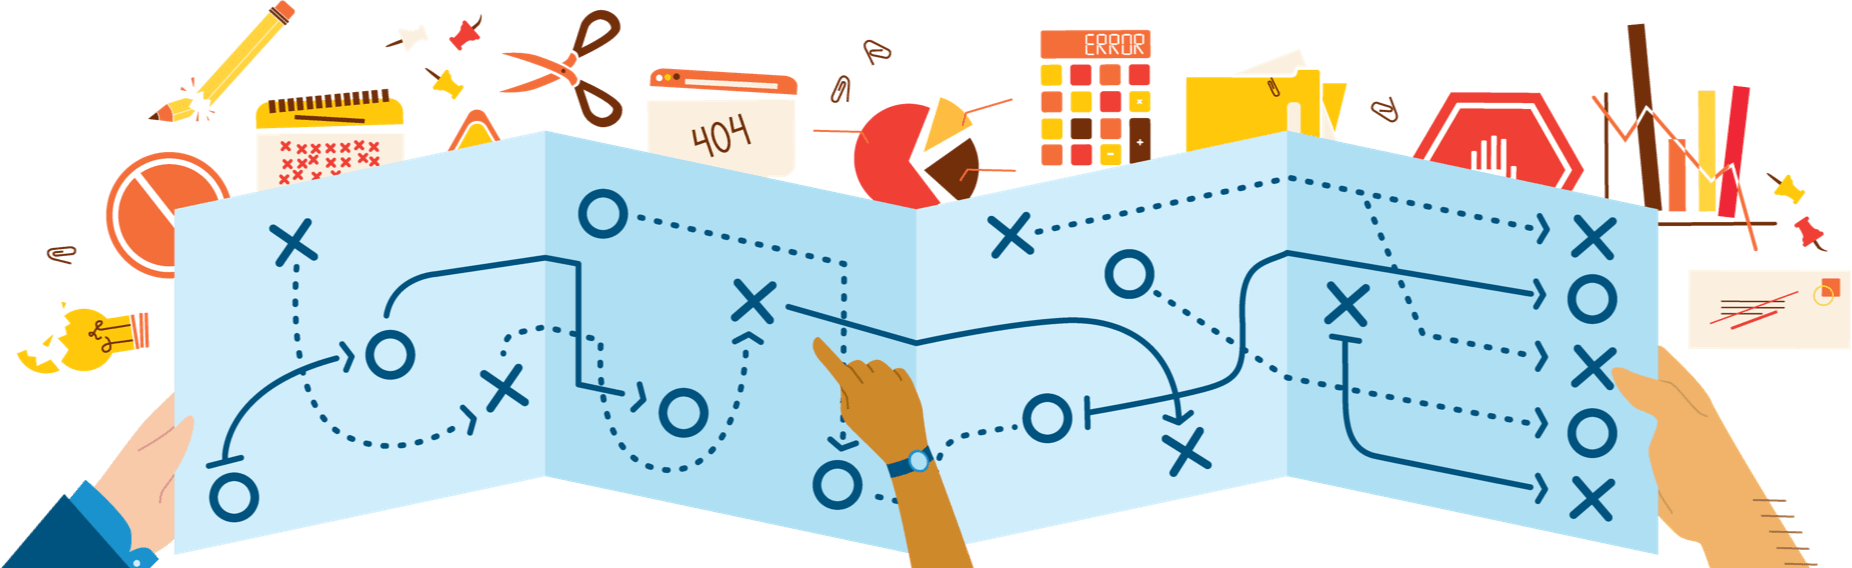 The Atlassian Team Playbook: team building activities that actually work.